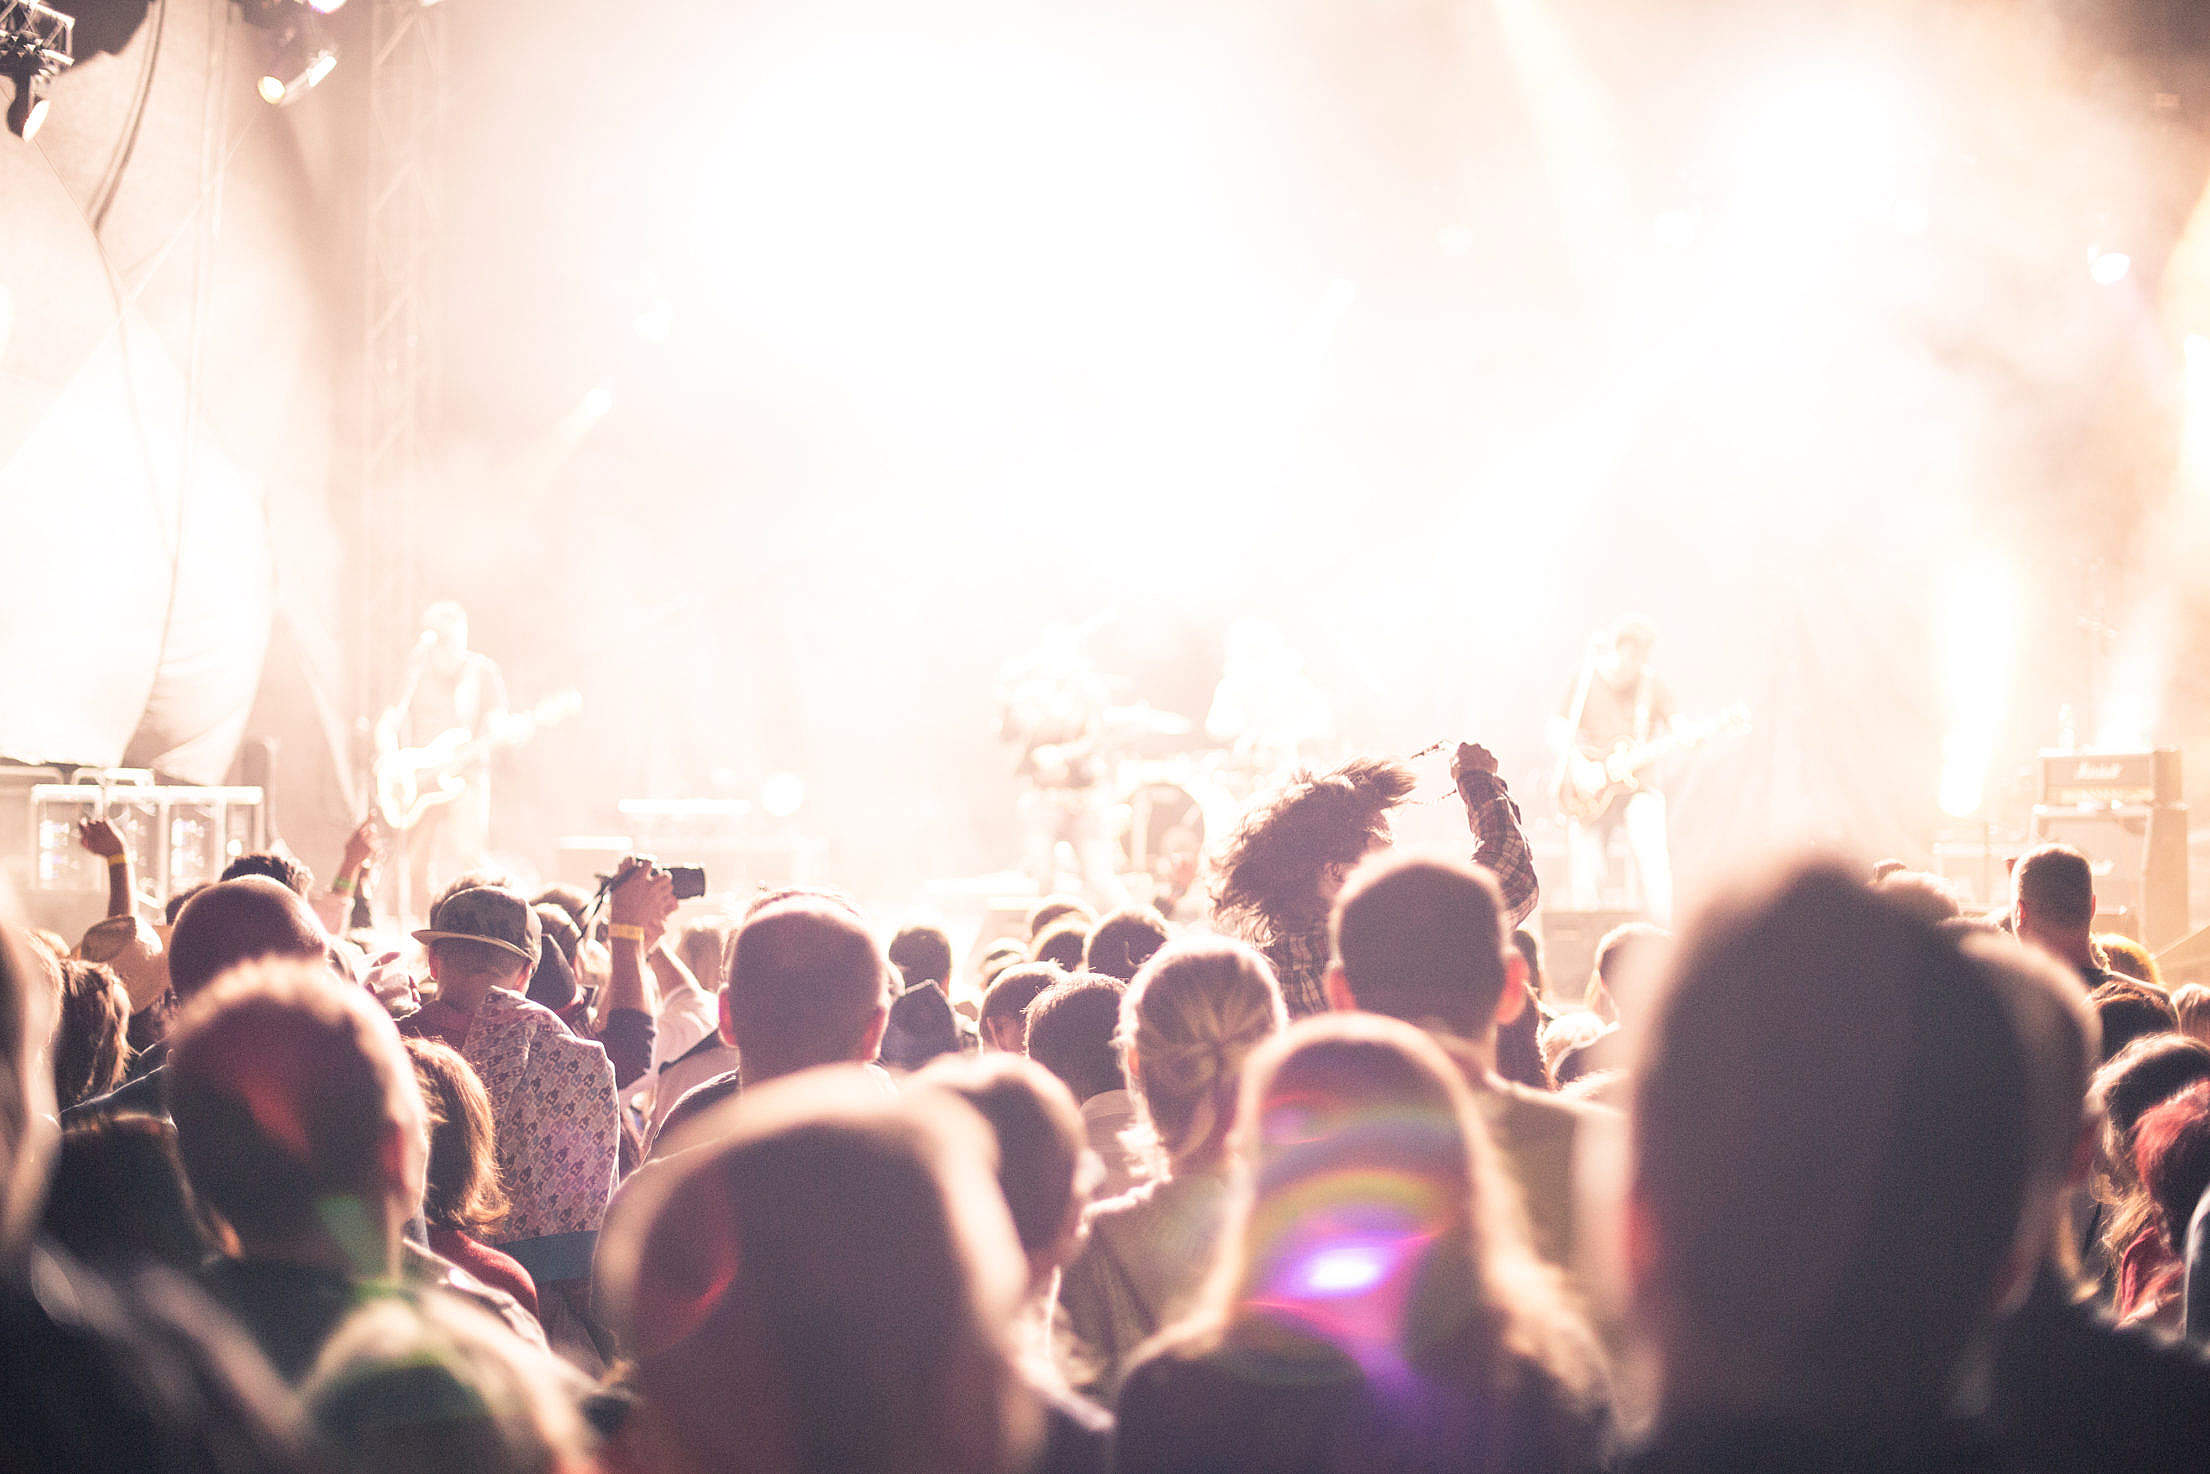 Crowds of Party People Enjoying a Live Concert Free Stock Photo